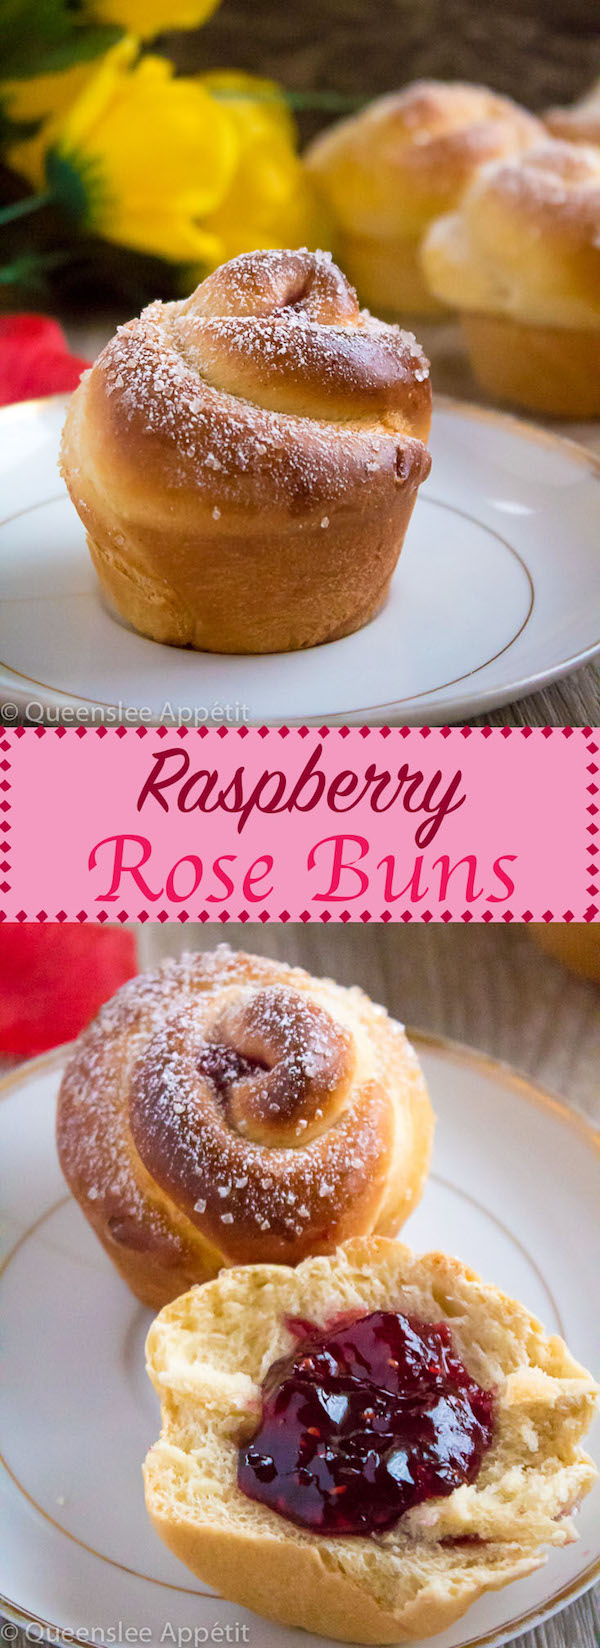 Wake up and smell the rose buns! Soft and fluffy rose-shaped buns filled with sweet raspberry jam. These Raspberry Rose Buns are an easy and gorgeous gift for Mothers Day!